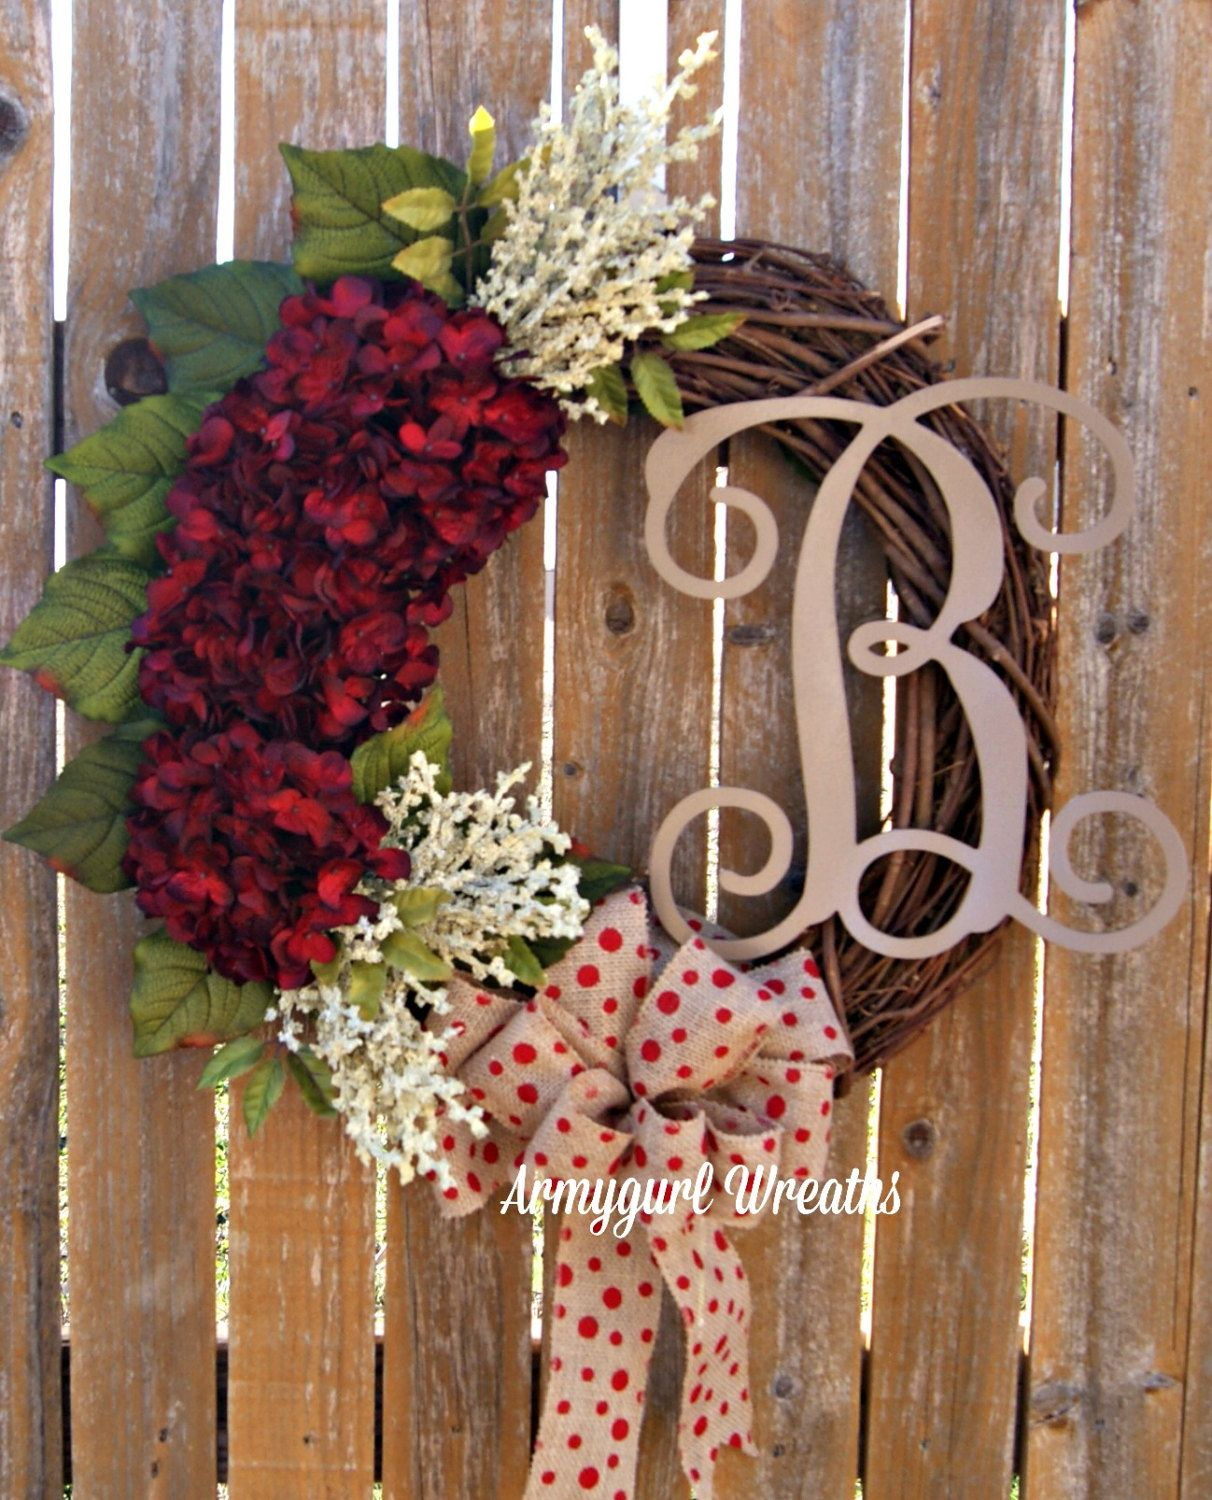 Monogram Wreaths Grapevine Wreath Hydrangea Wreath Home Decor Everyday Wreath Fro With Images Door Wreath Hanger Spring Door Wreaths Hydrangea Wreath Spring